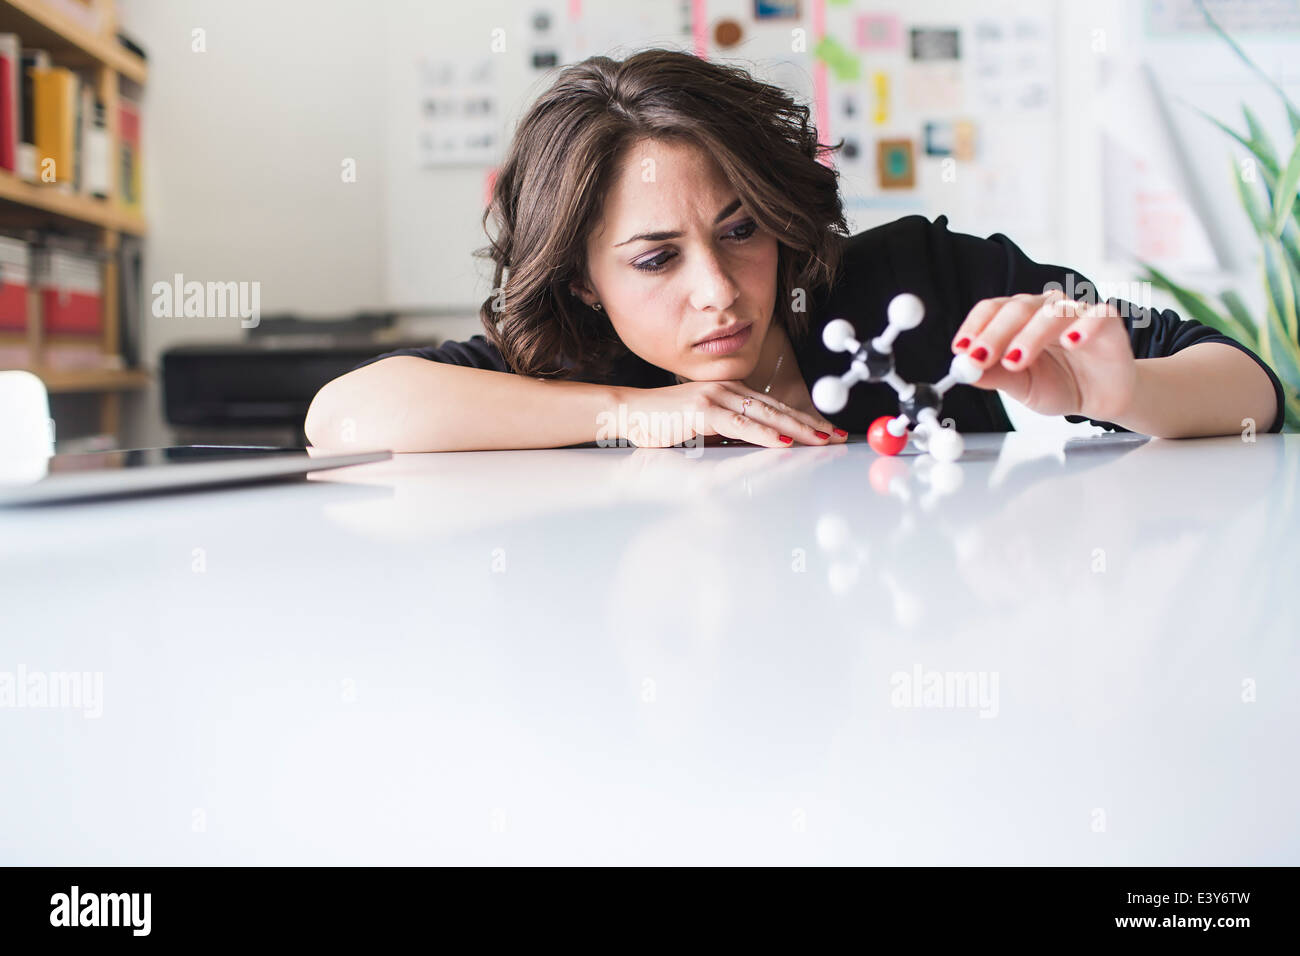 Young woman contemplating molecular model of Ethanol molecule - Stock Image